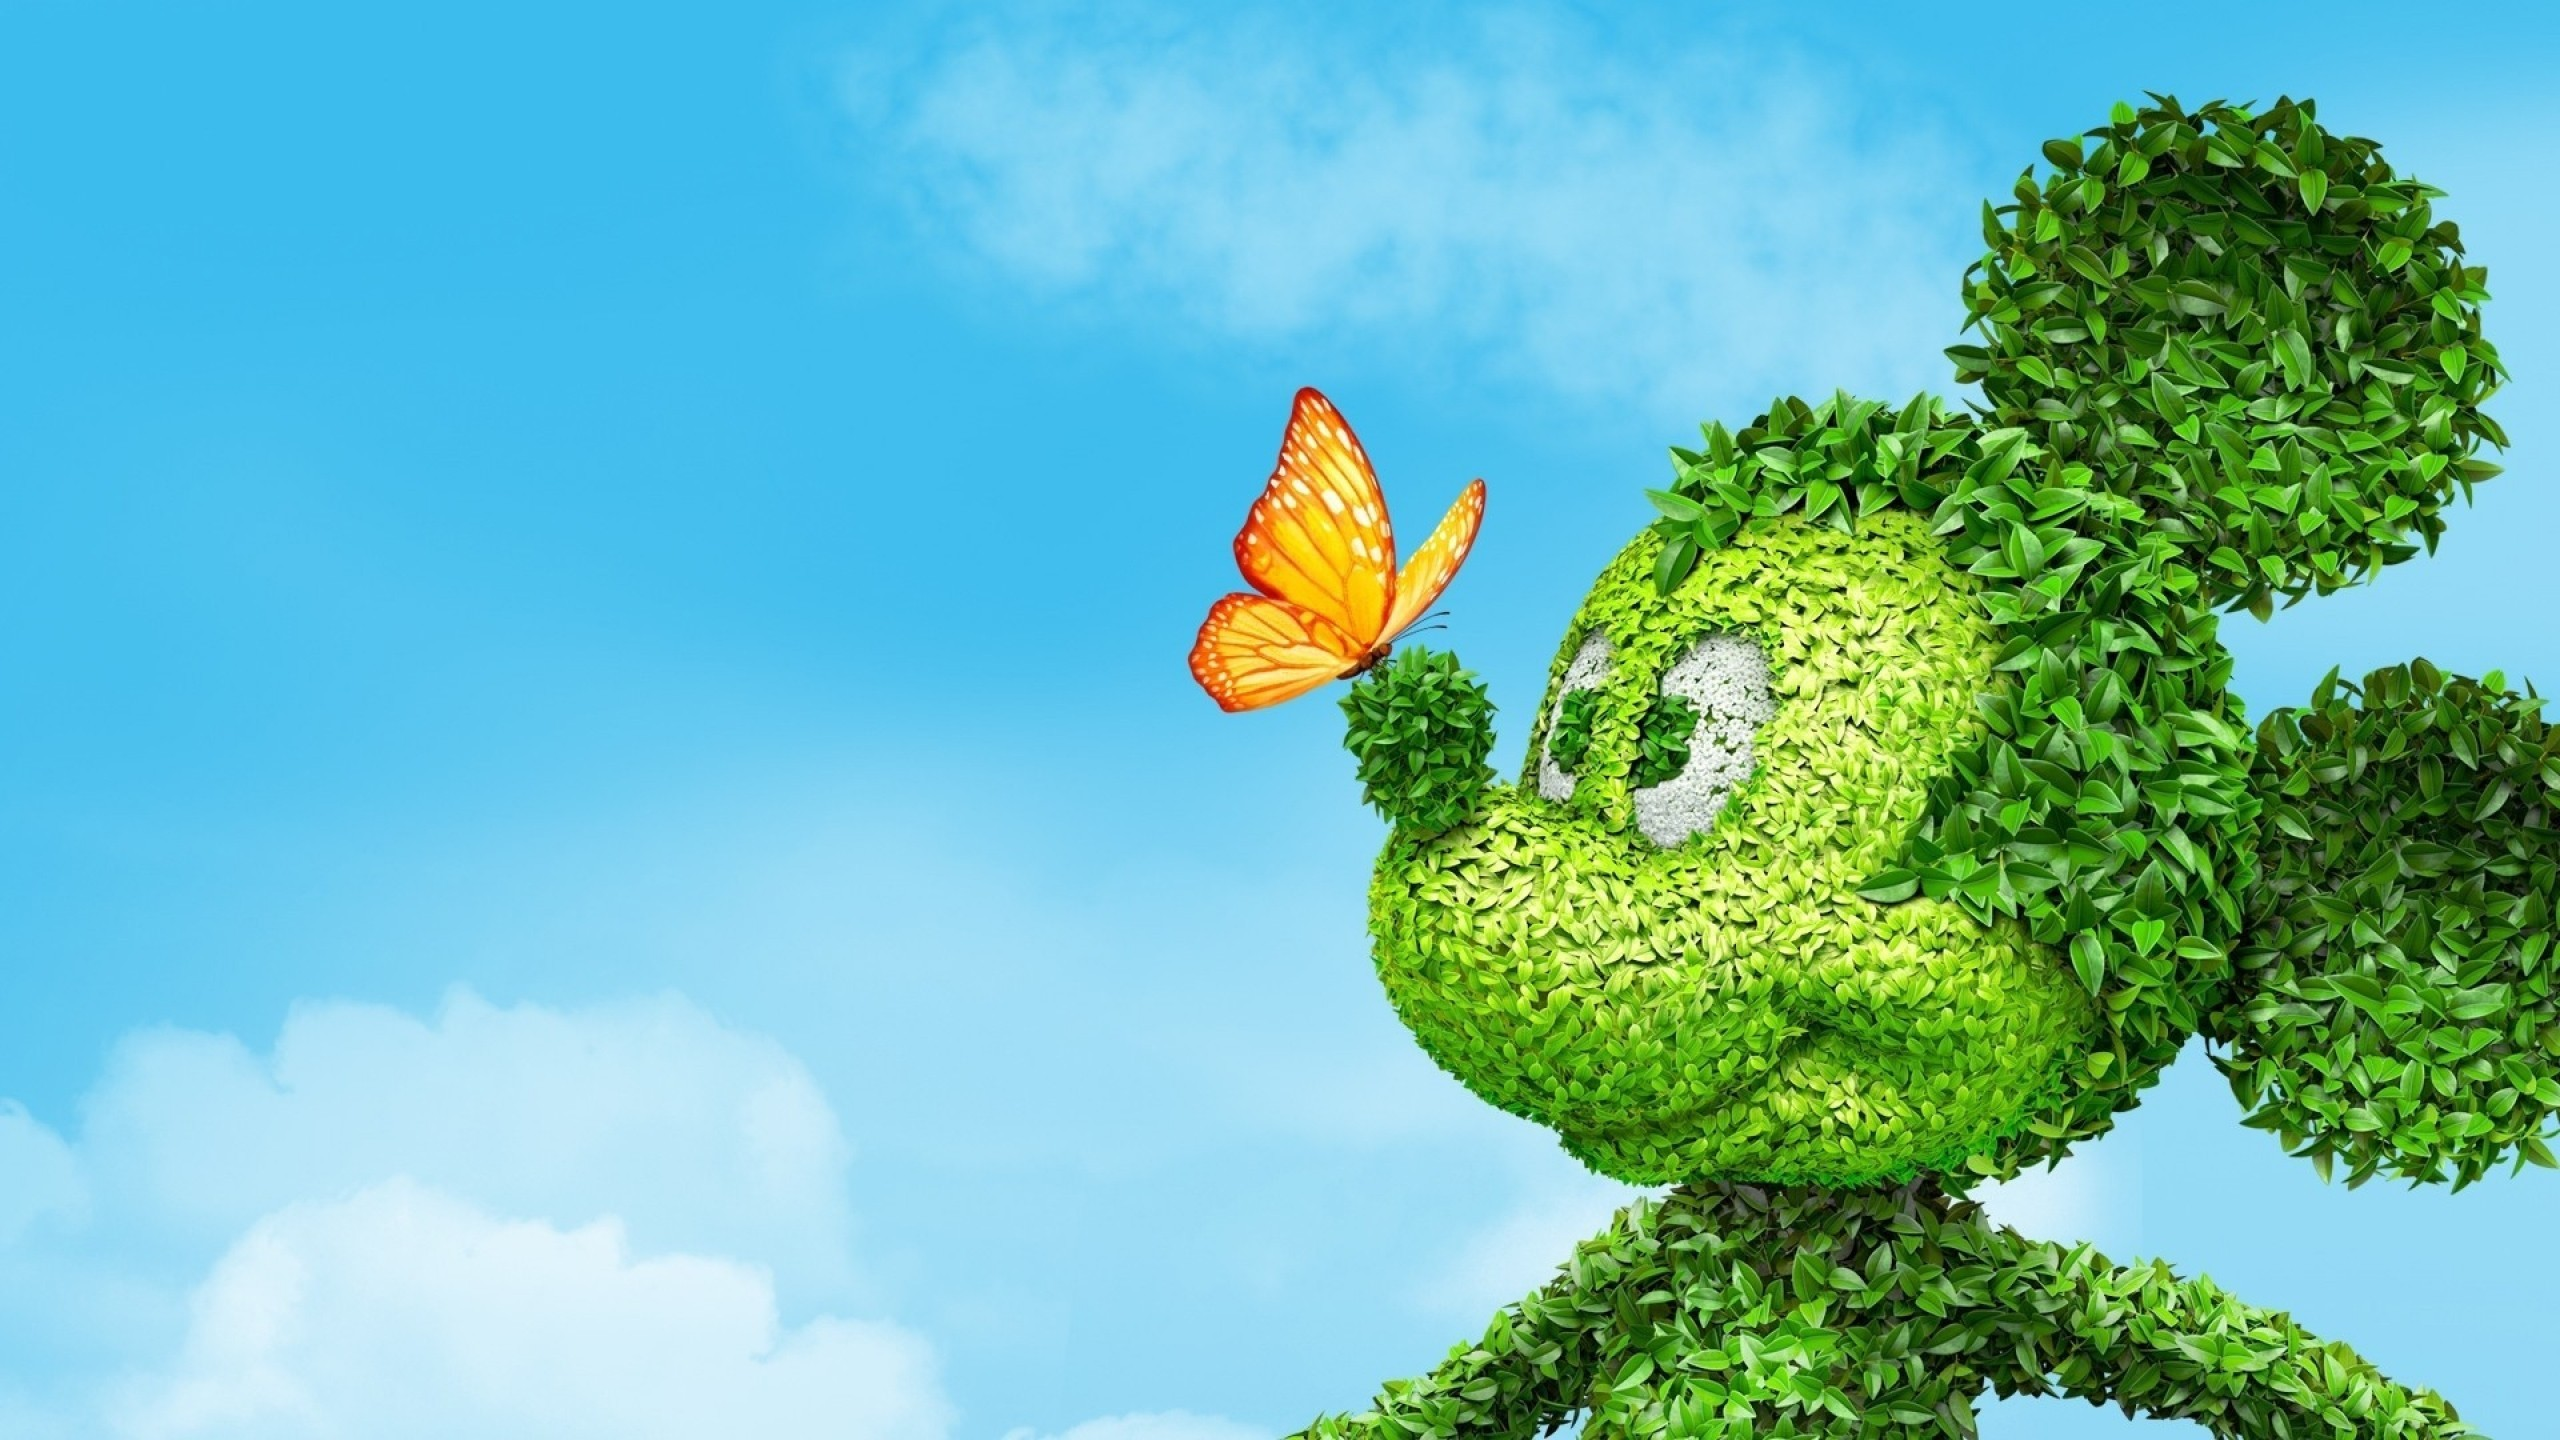 Image: Mickey mouse, leaves, butterfly, sky